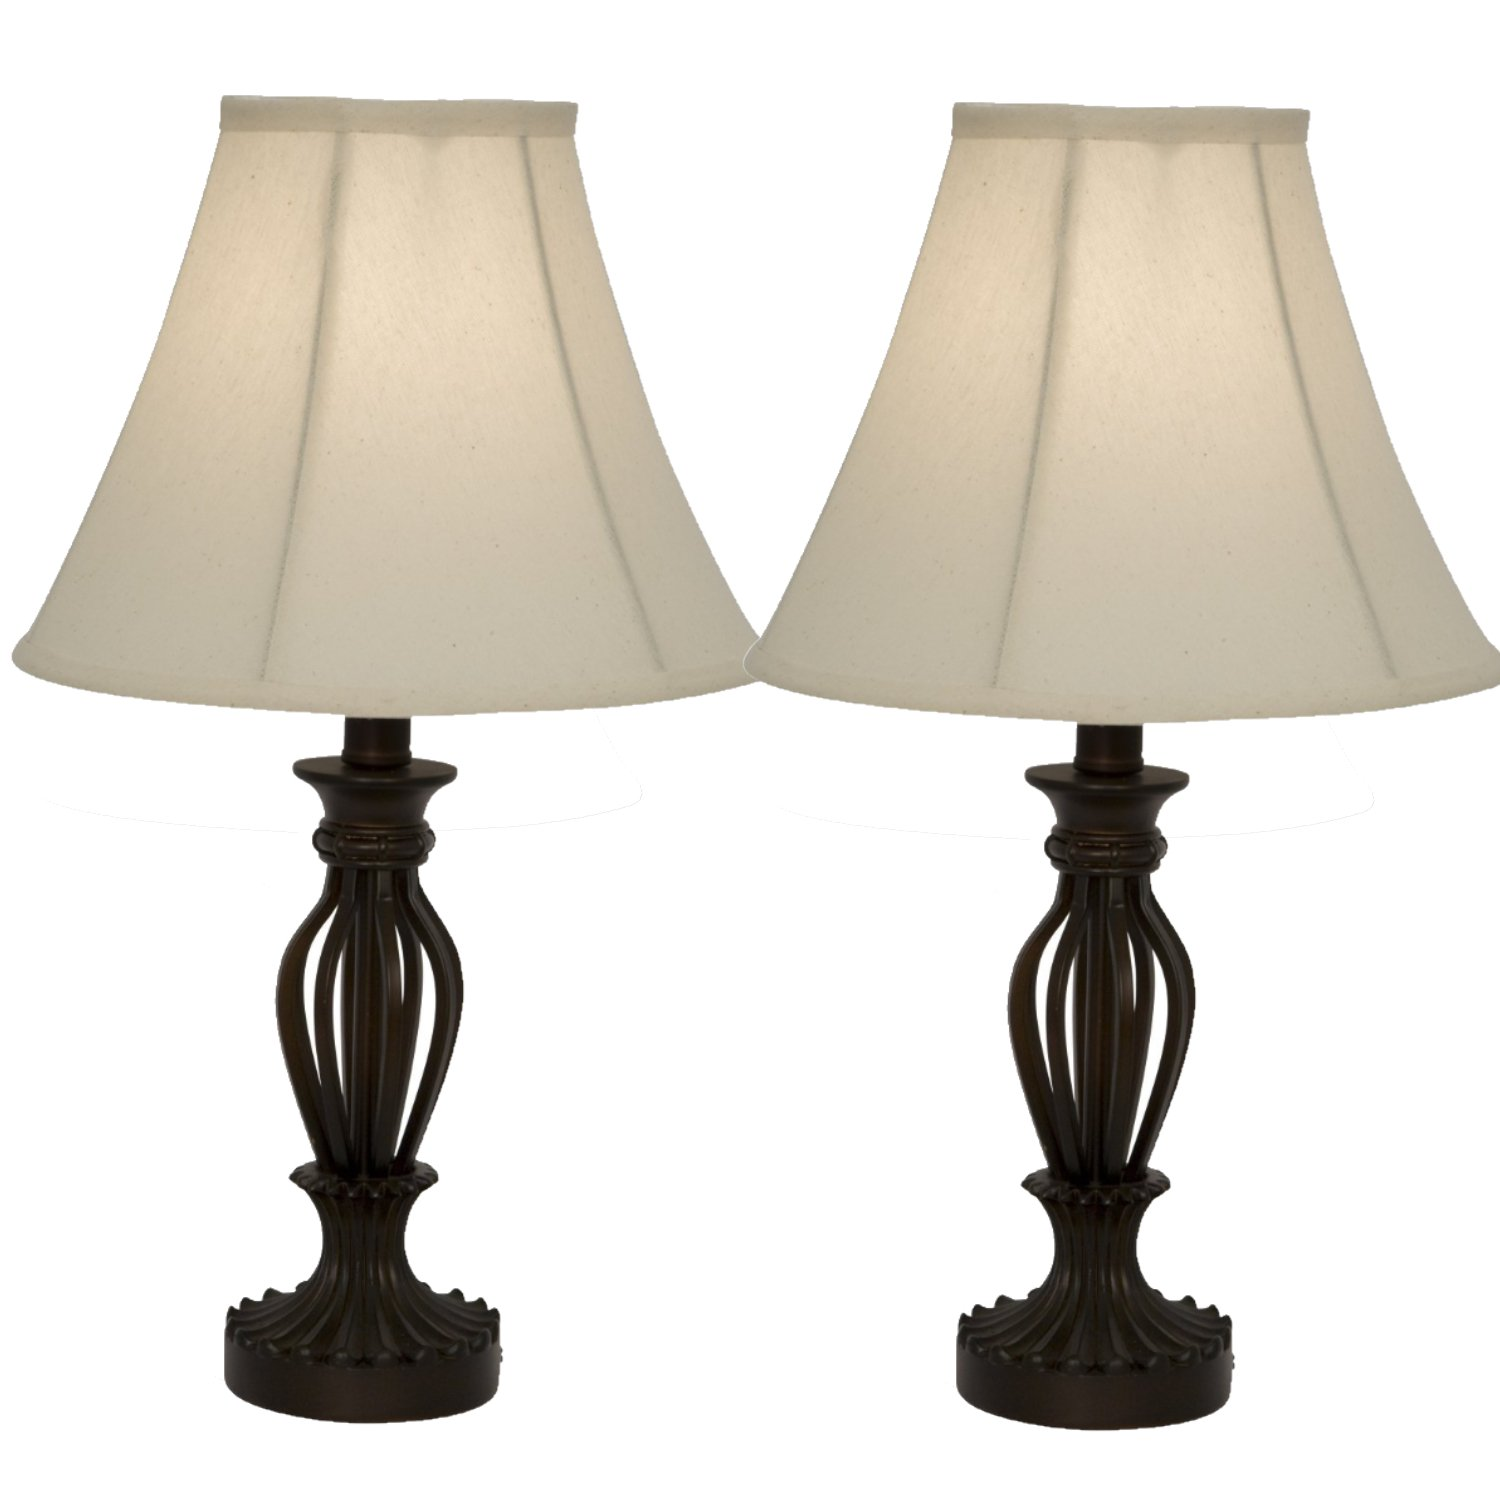 Lamp sets amazon traditional iron scrollwork table lamps bronze table lamp set 2 pack geotapseo Choice Image